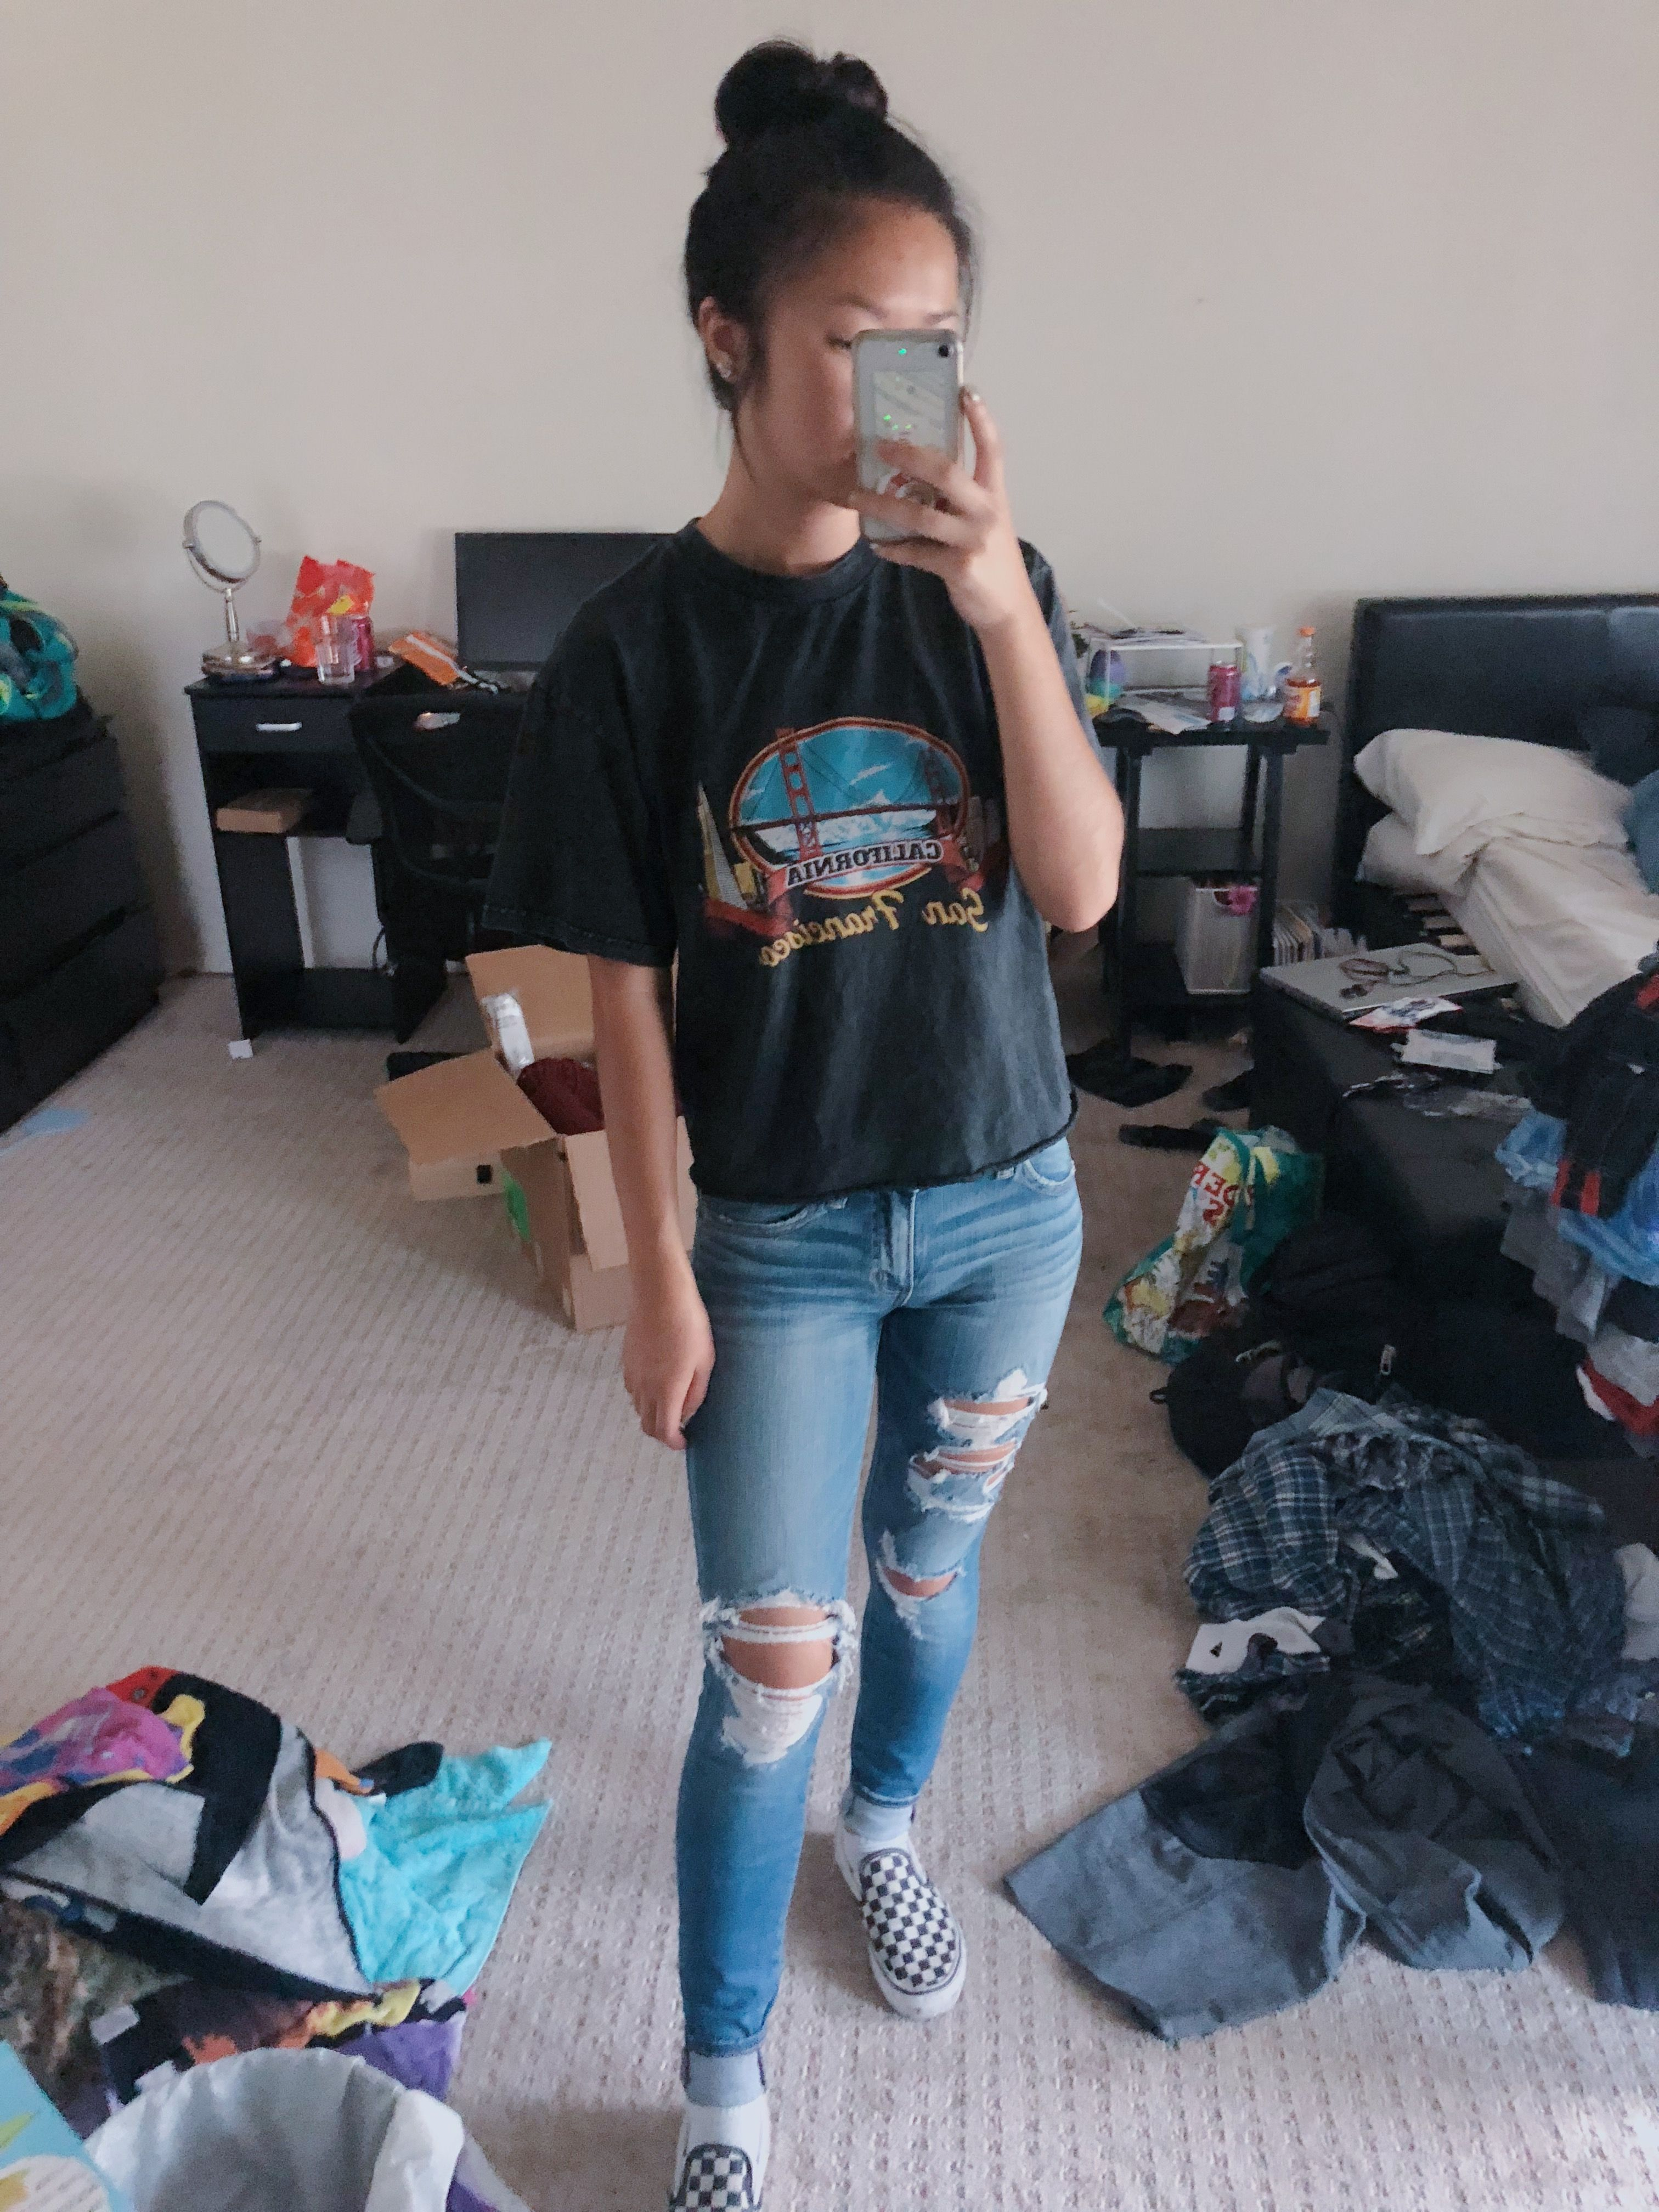 Ootd: graphic tee, ripped jeans, checkered vans | Crop top